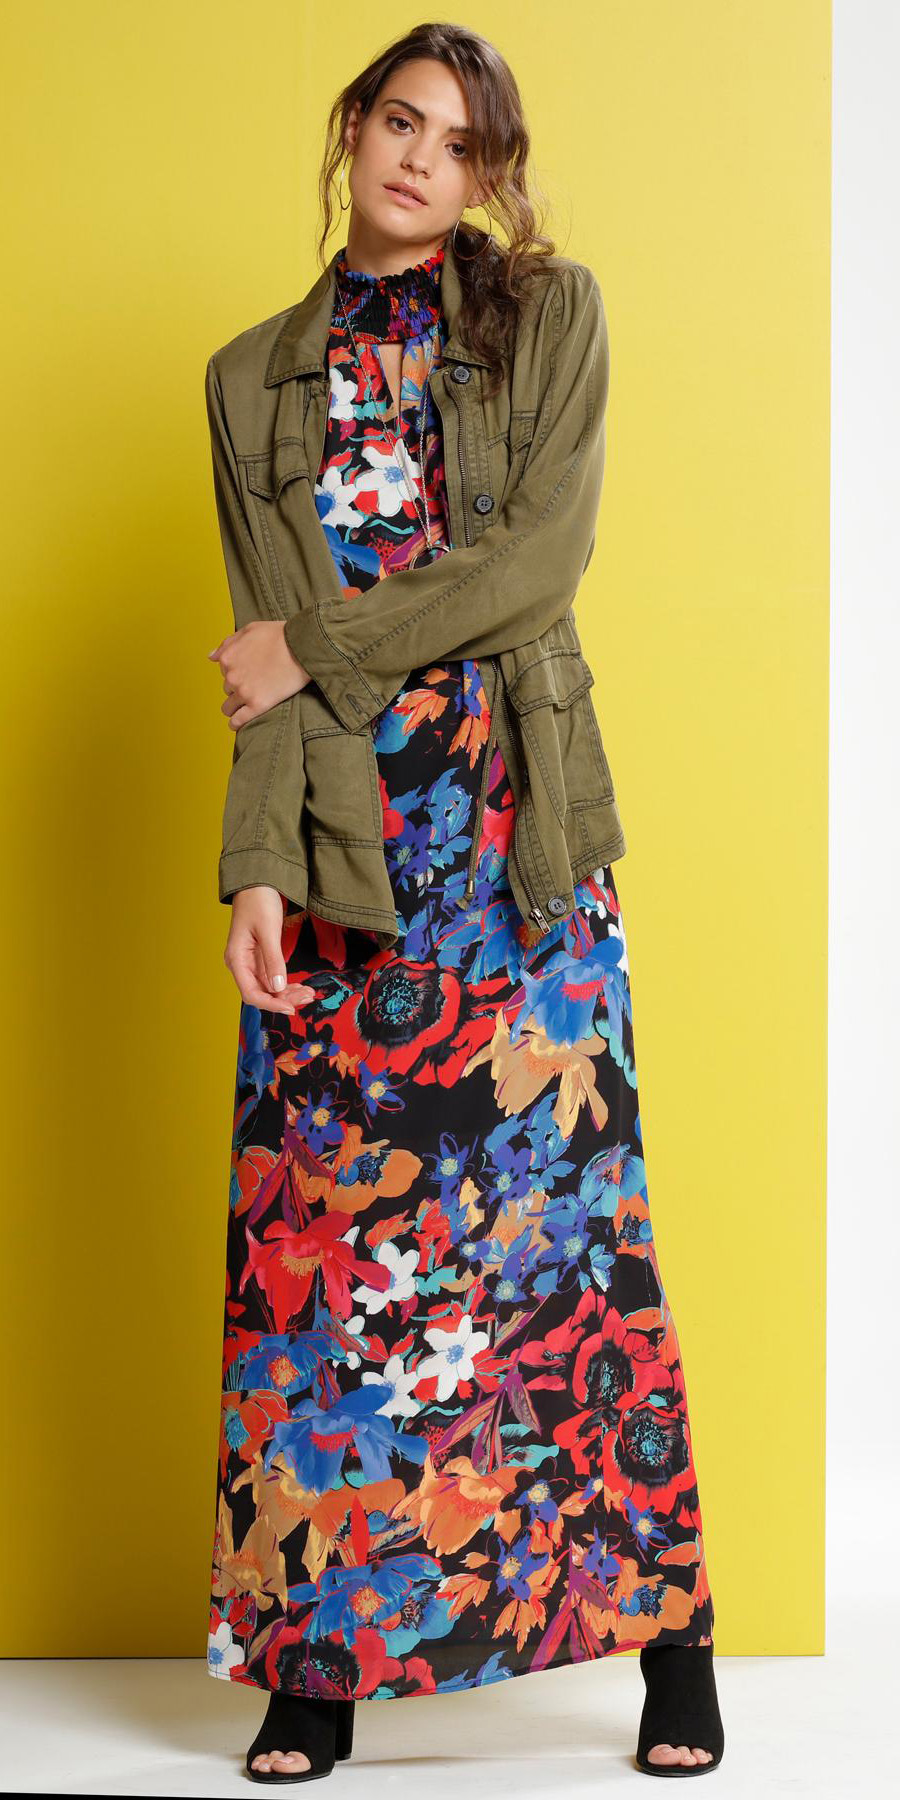 red-dress-print-green-olive-jacket-utility-hairr-black-shoe-sandalh-maxi-fall-winter-lunch.jpg